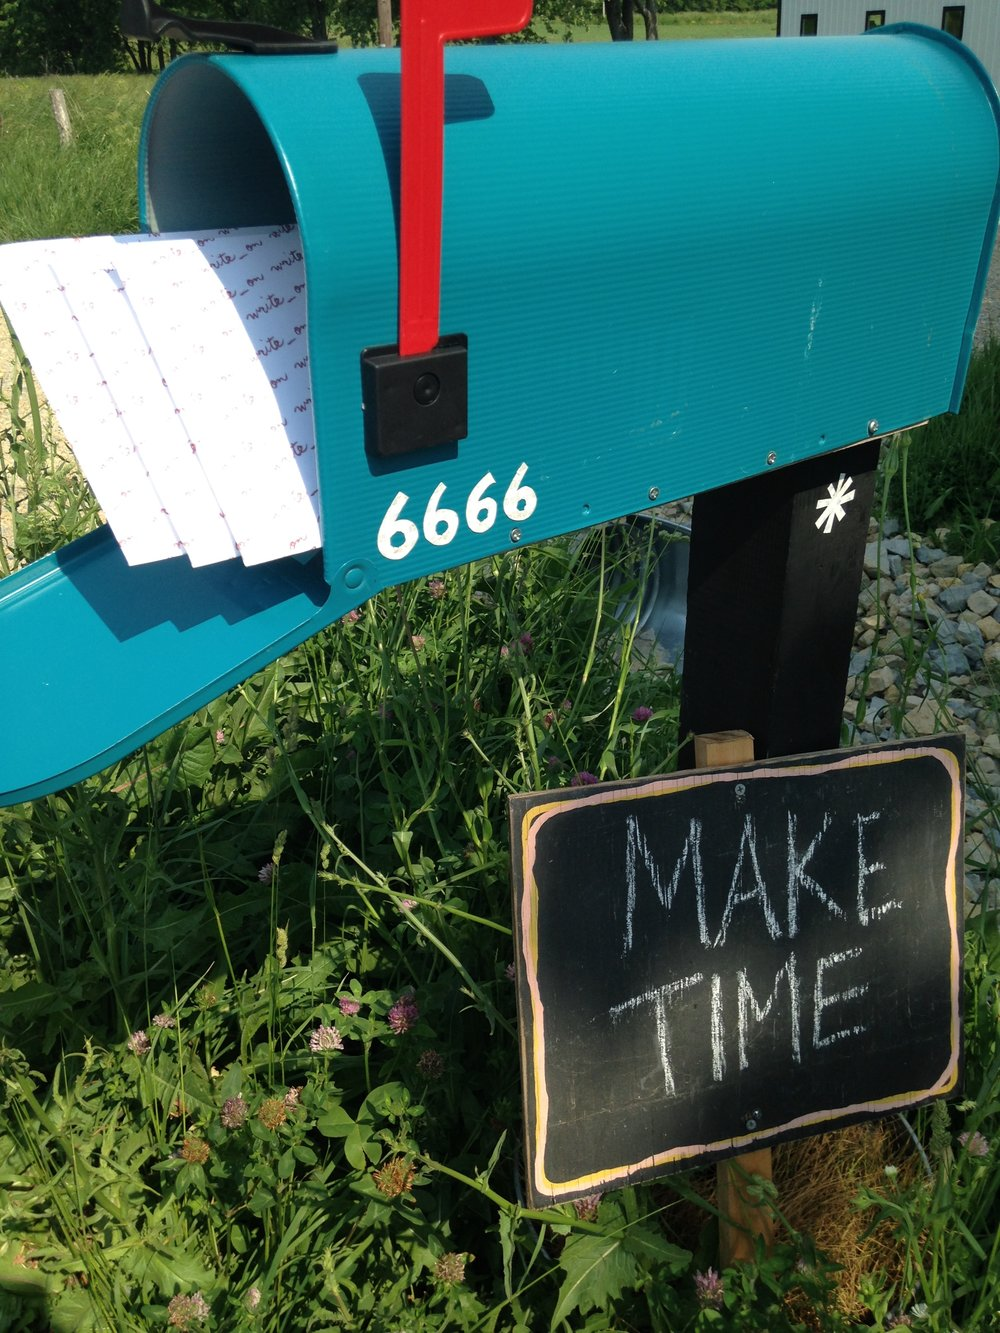 Make Time Sign And Mailbox.JPG